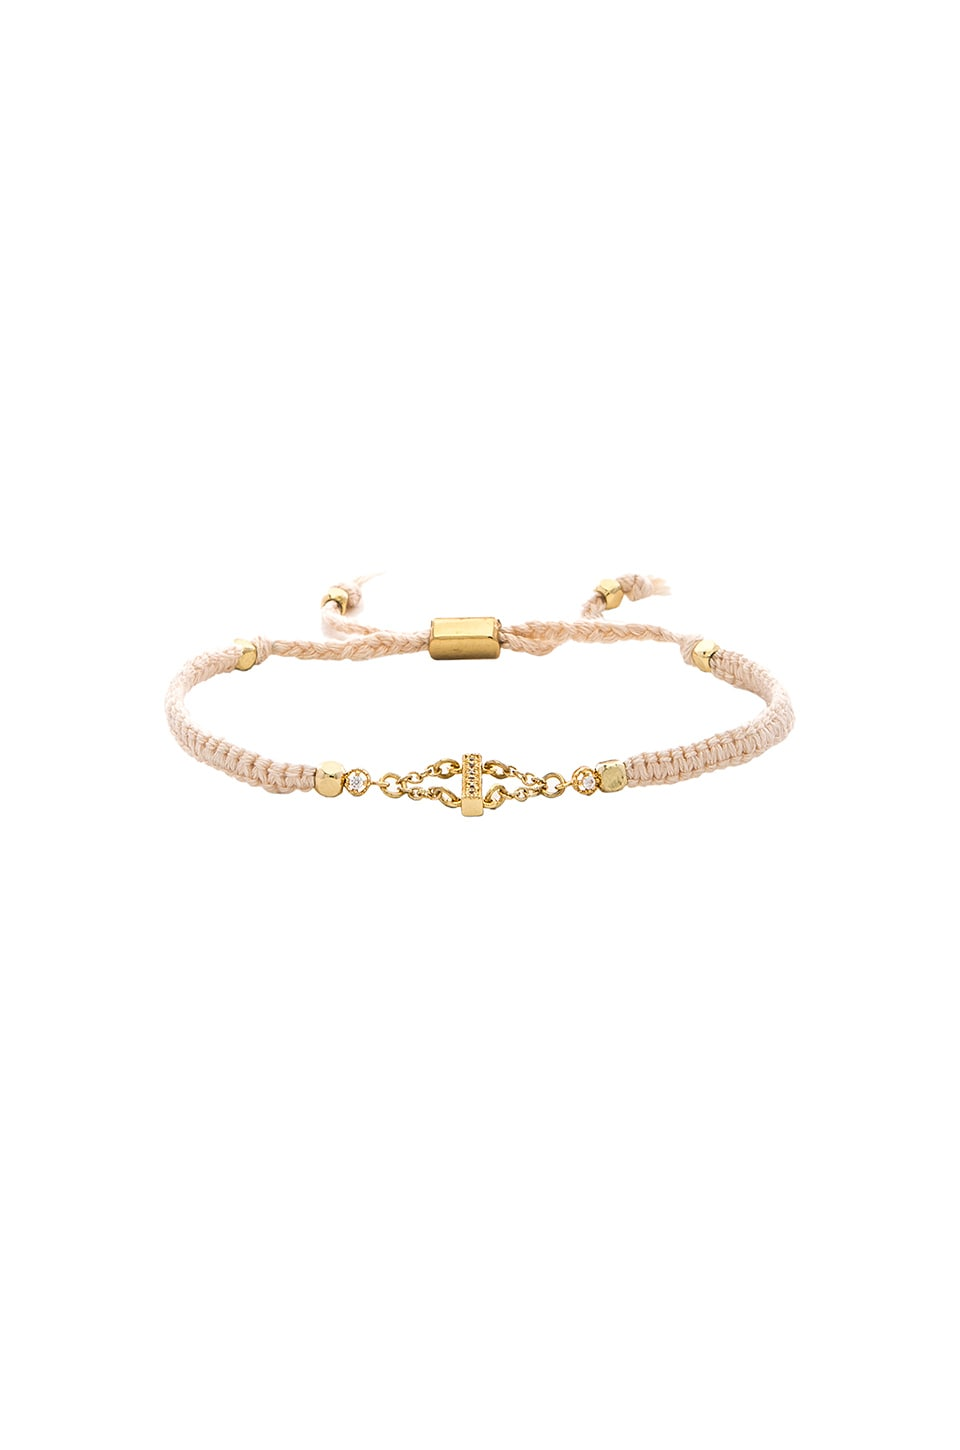 Ettika Bracelet in Cream & Gold